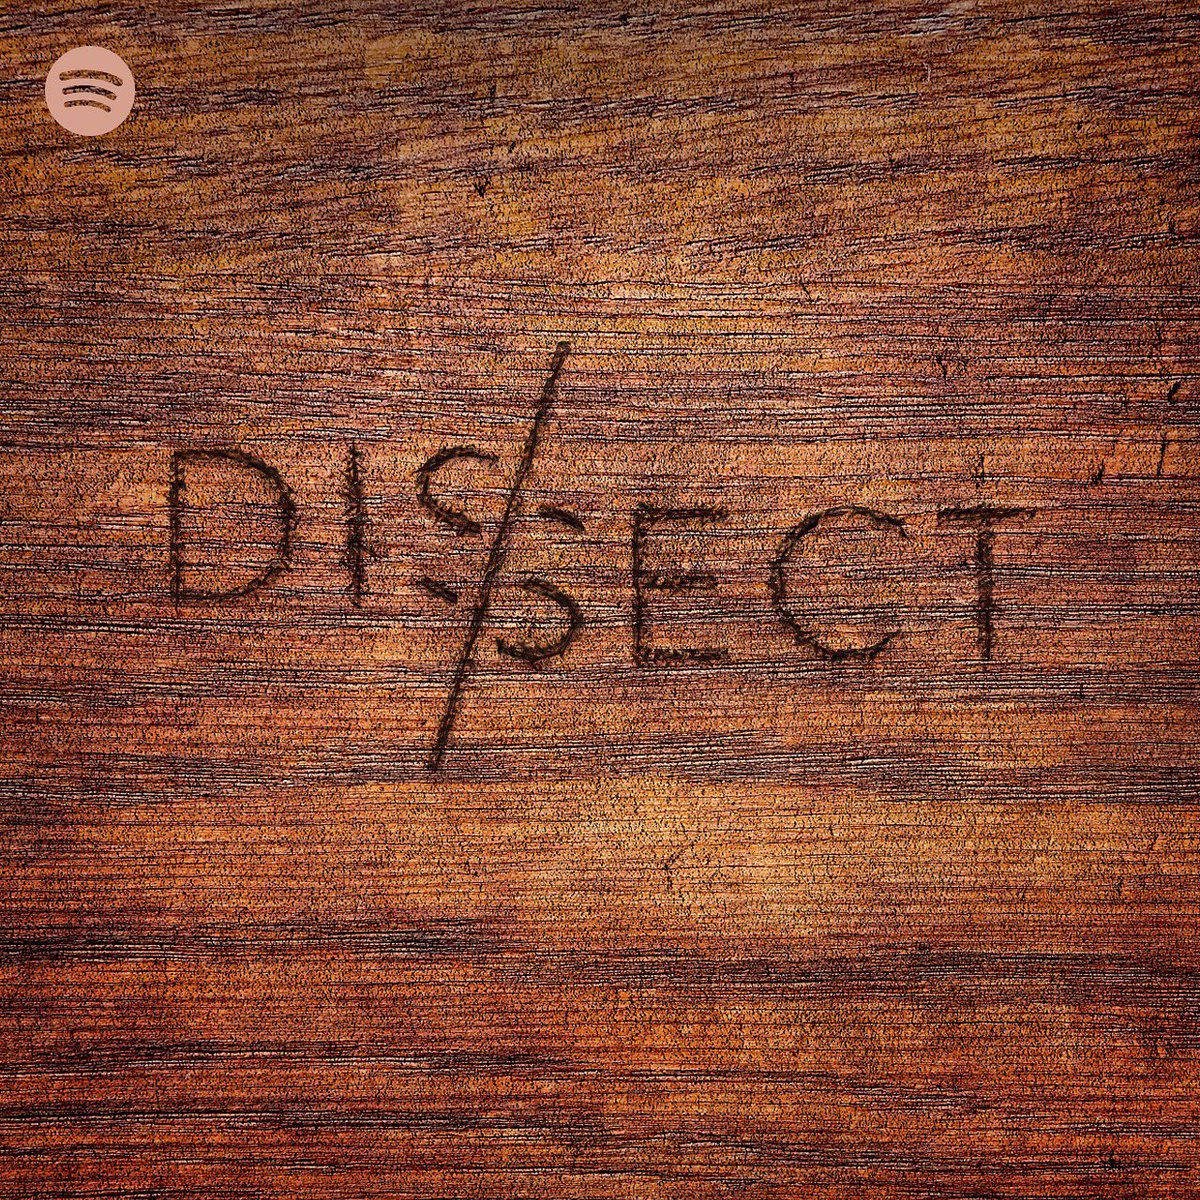 Dissect Podcast Dissectpodcast Twitter